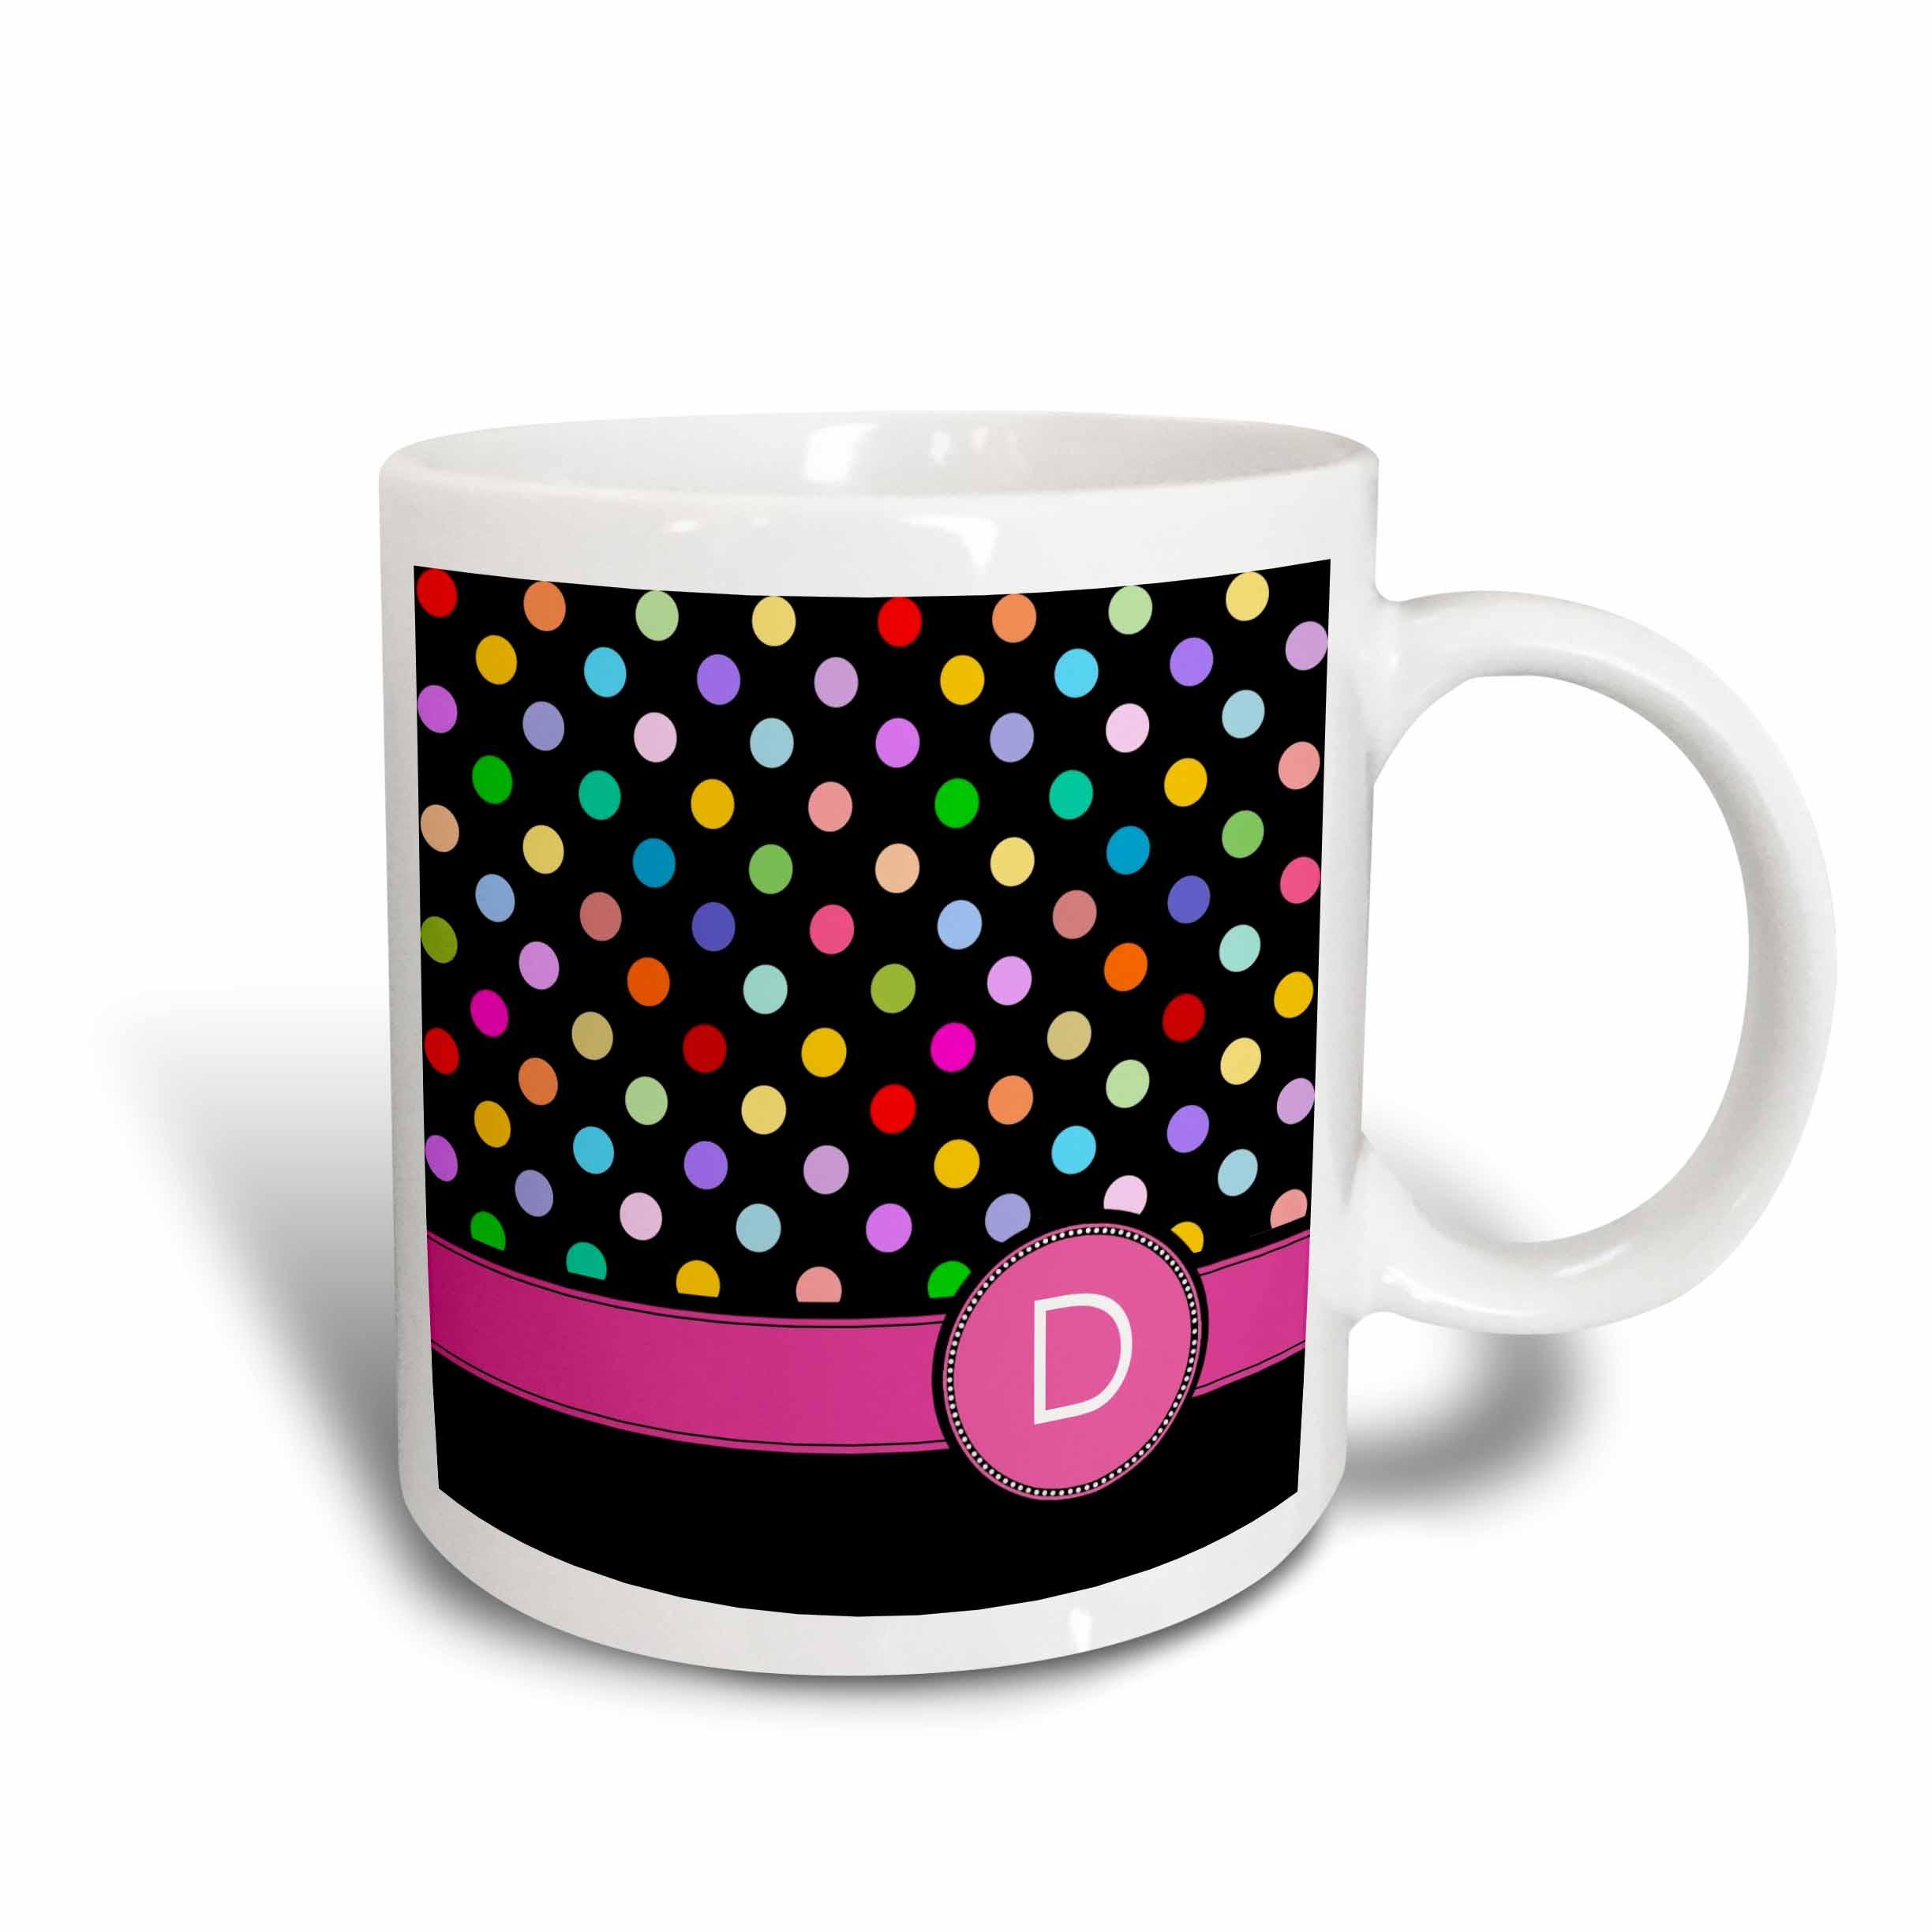 3dRose Letter D monogrammed on rainbow polka dots pattern with hot pink personal initial - multicolored, Ceramic Mug, 15-ounce